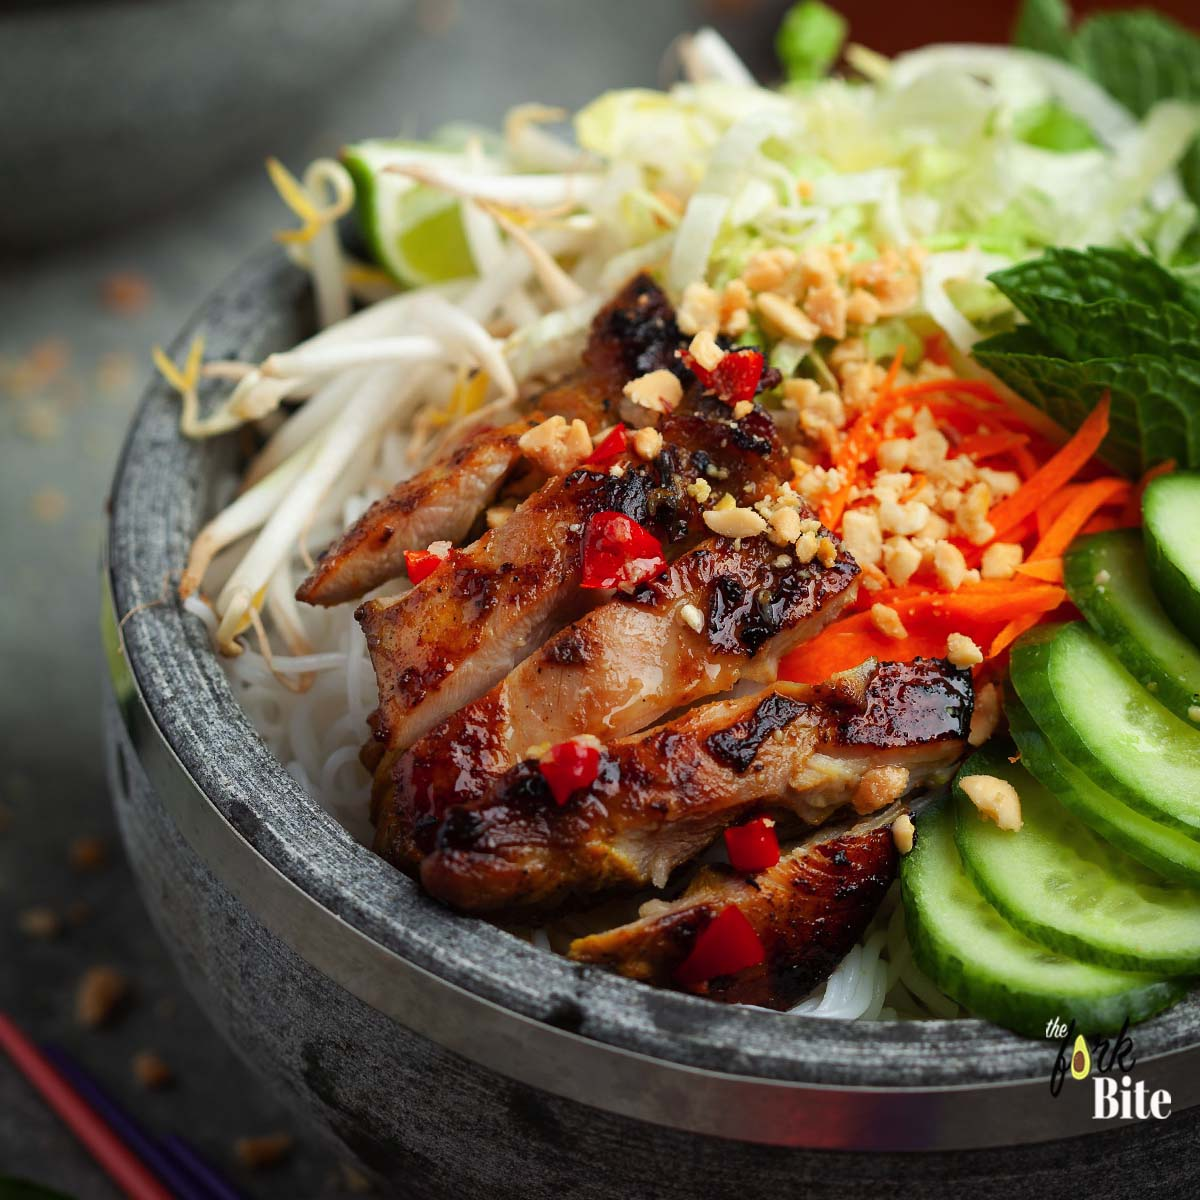 Vermicelli noodles (Bun Ga Nuong) topped with your favorite veggies and Vietnamese lemongrass chicken. Laced with Nuoc Cham, the famous dipping sauce that's served with everything in Vietnam.